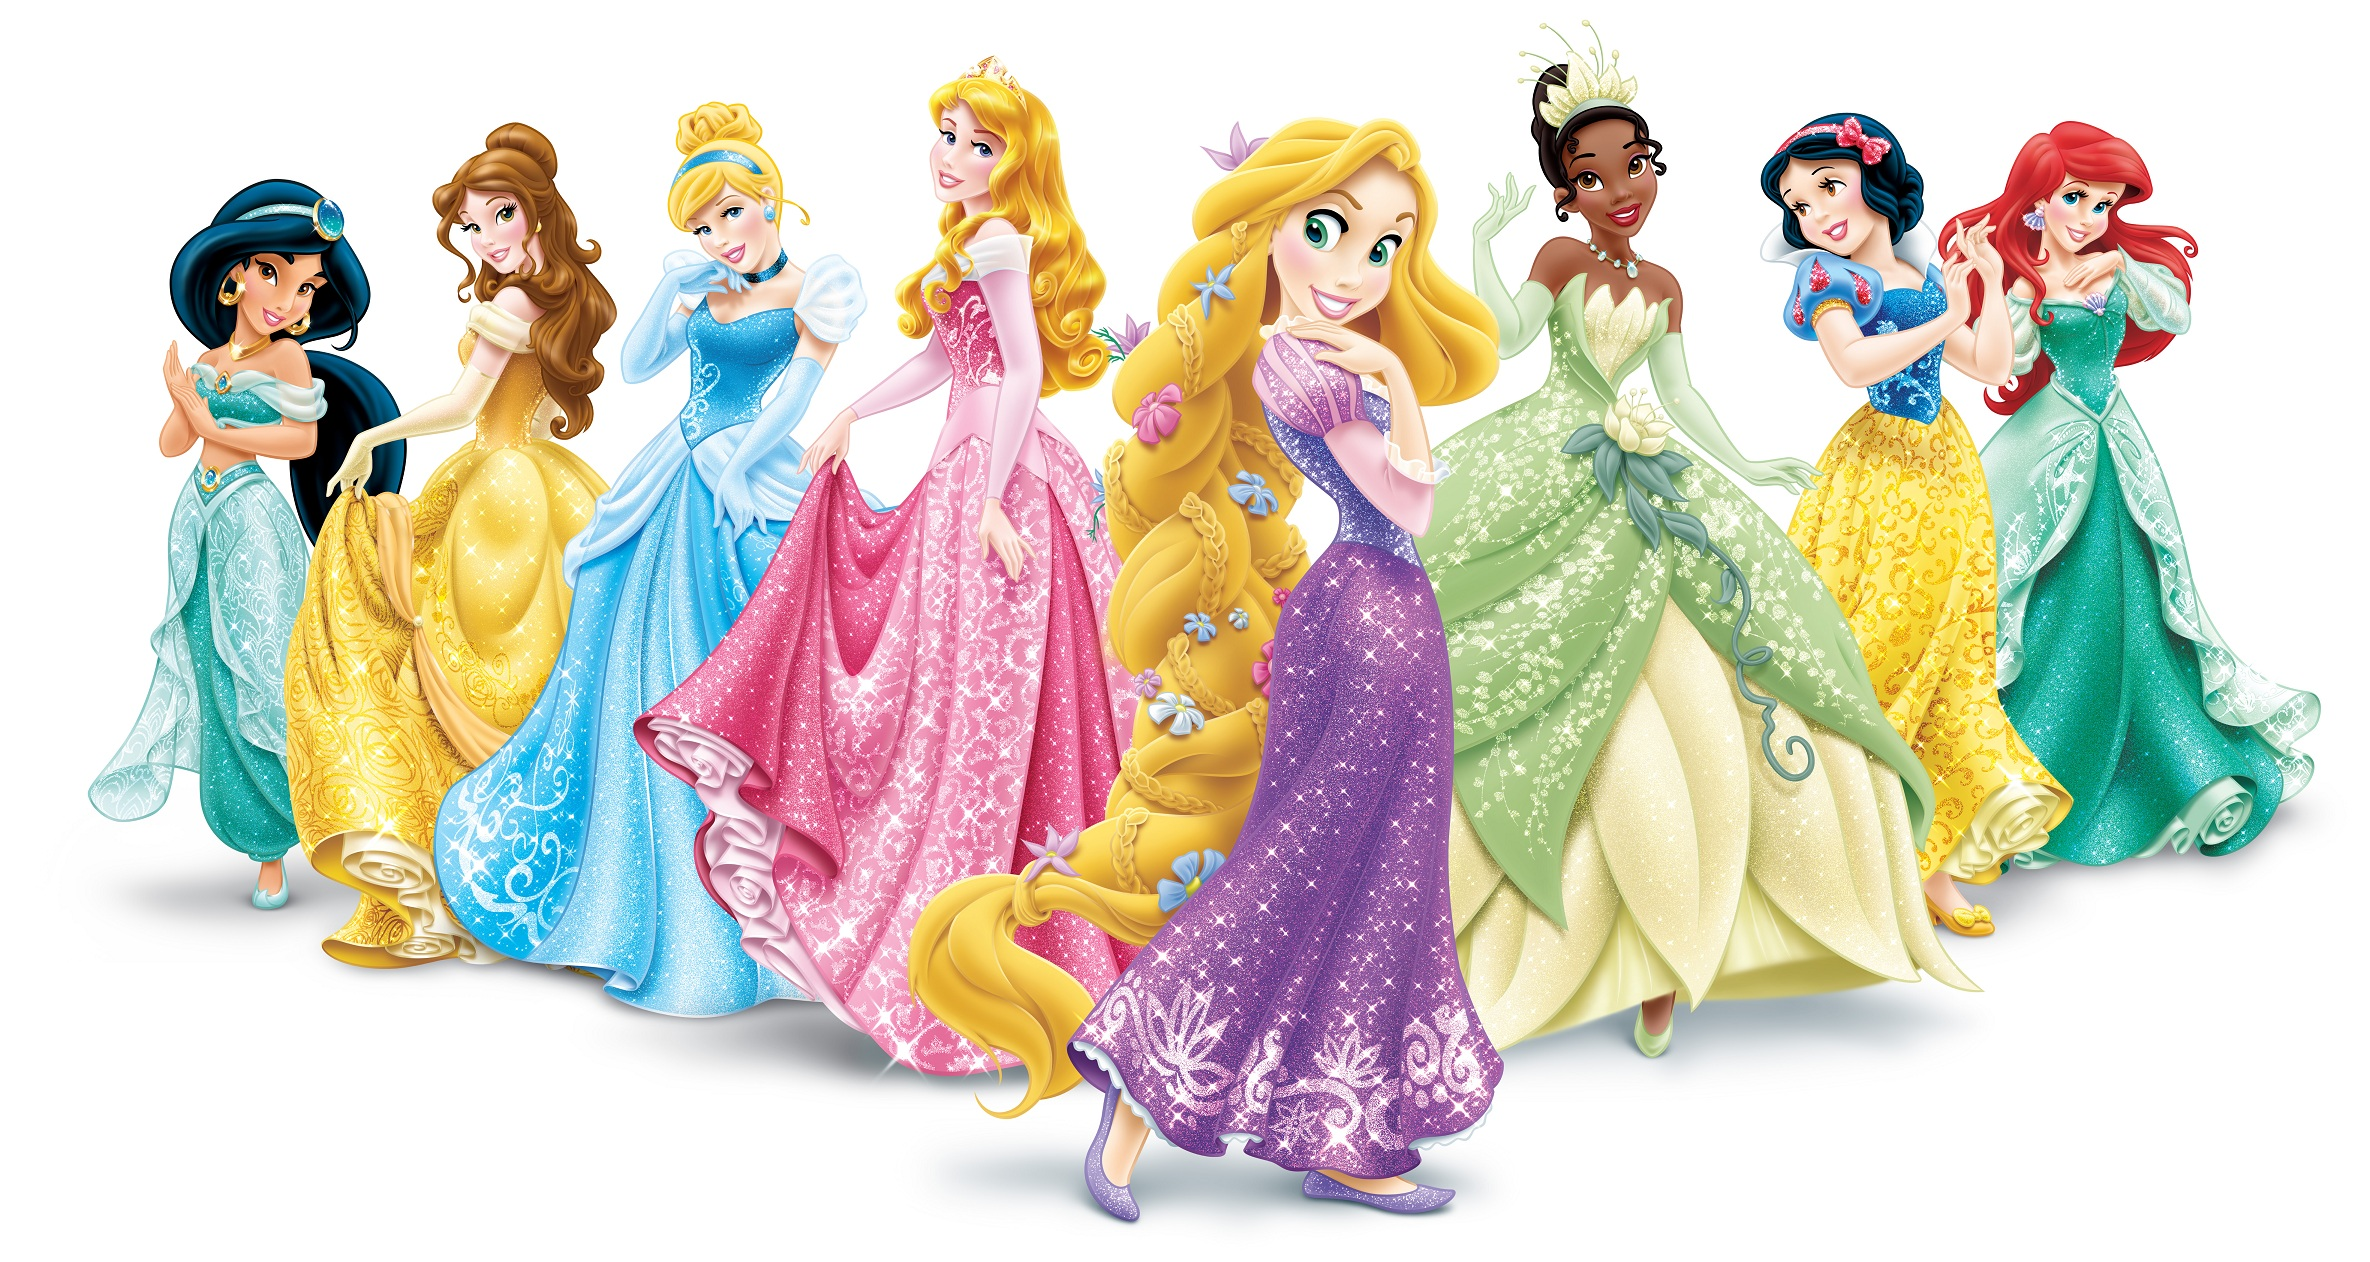 disney princess disney princess rapunzel giant wall stickers disney princess disney princess rapunzel giant wall stickers disney princesses 8 giant stickers collection 100